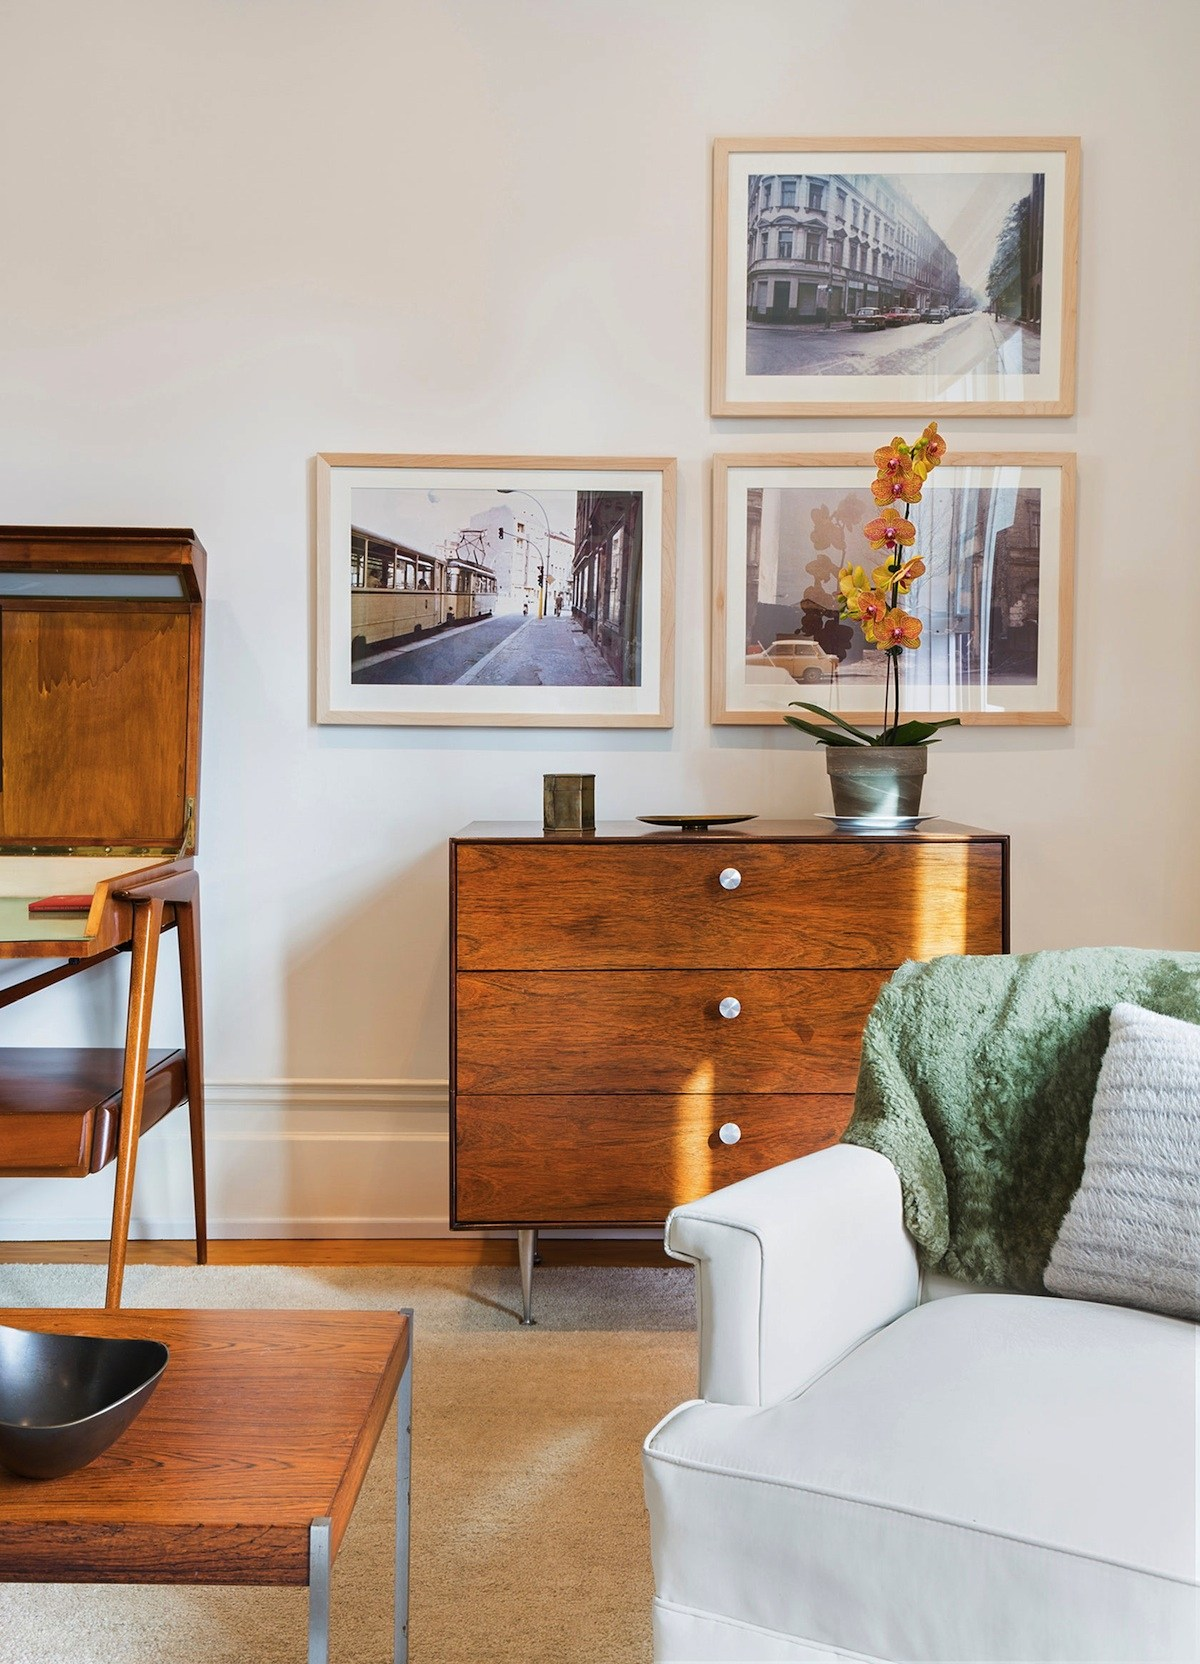 Andrew Franz transformed this Chelsea apartment by replacing walls